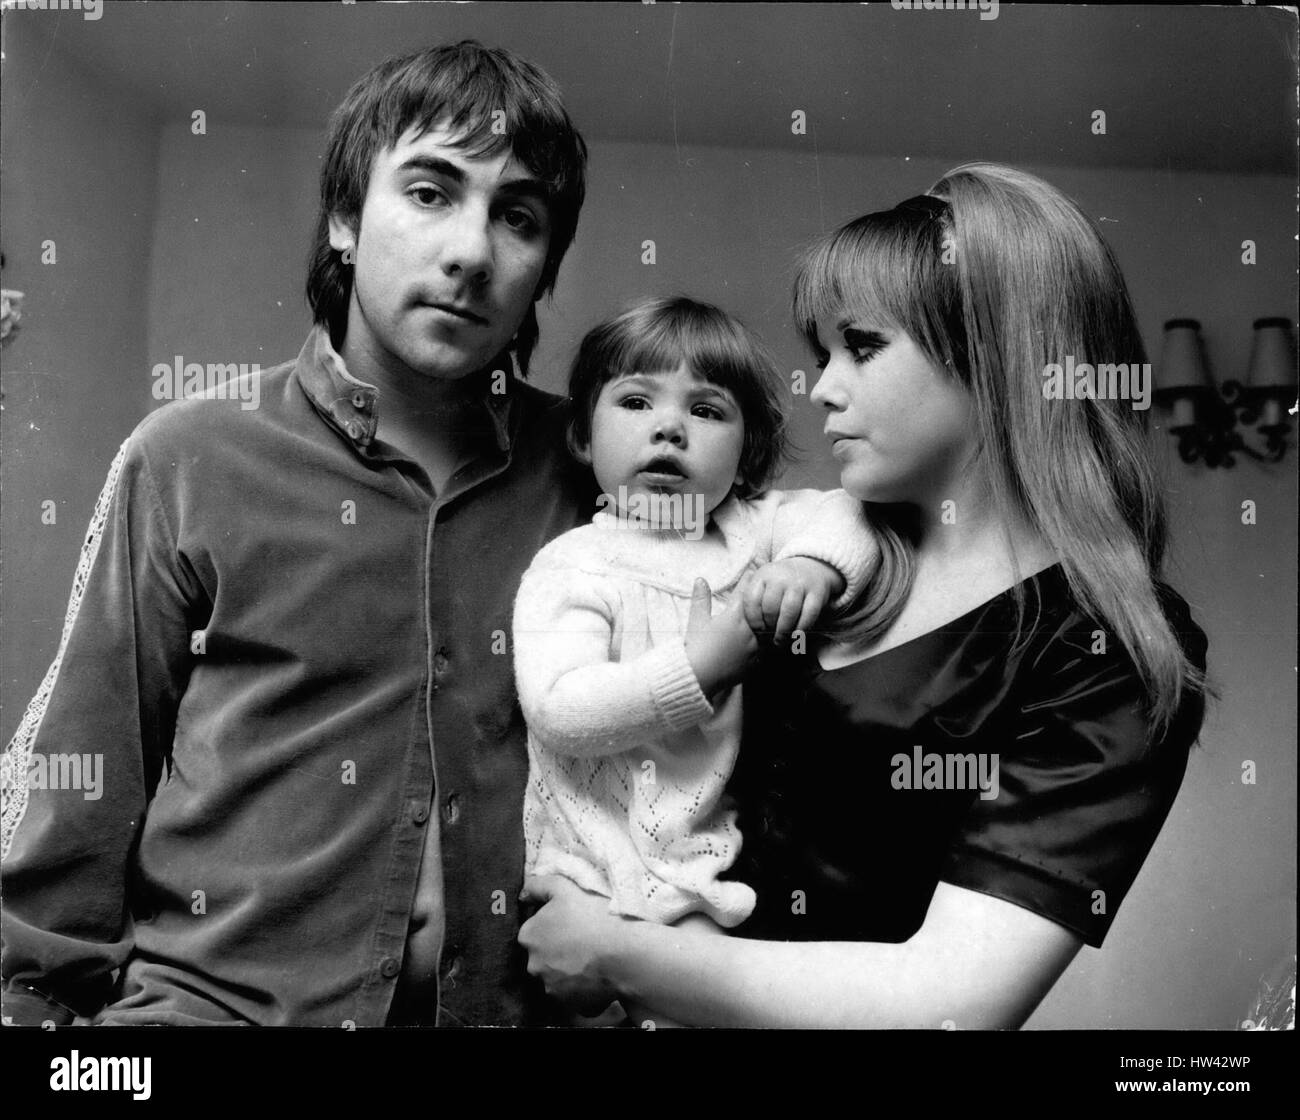 Jan. 01, 1970 - Man died under Pop star's car.: A man was pinned beneath a Bentley car belonging to Keith Moon, - Stock Image